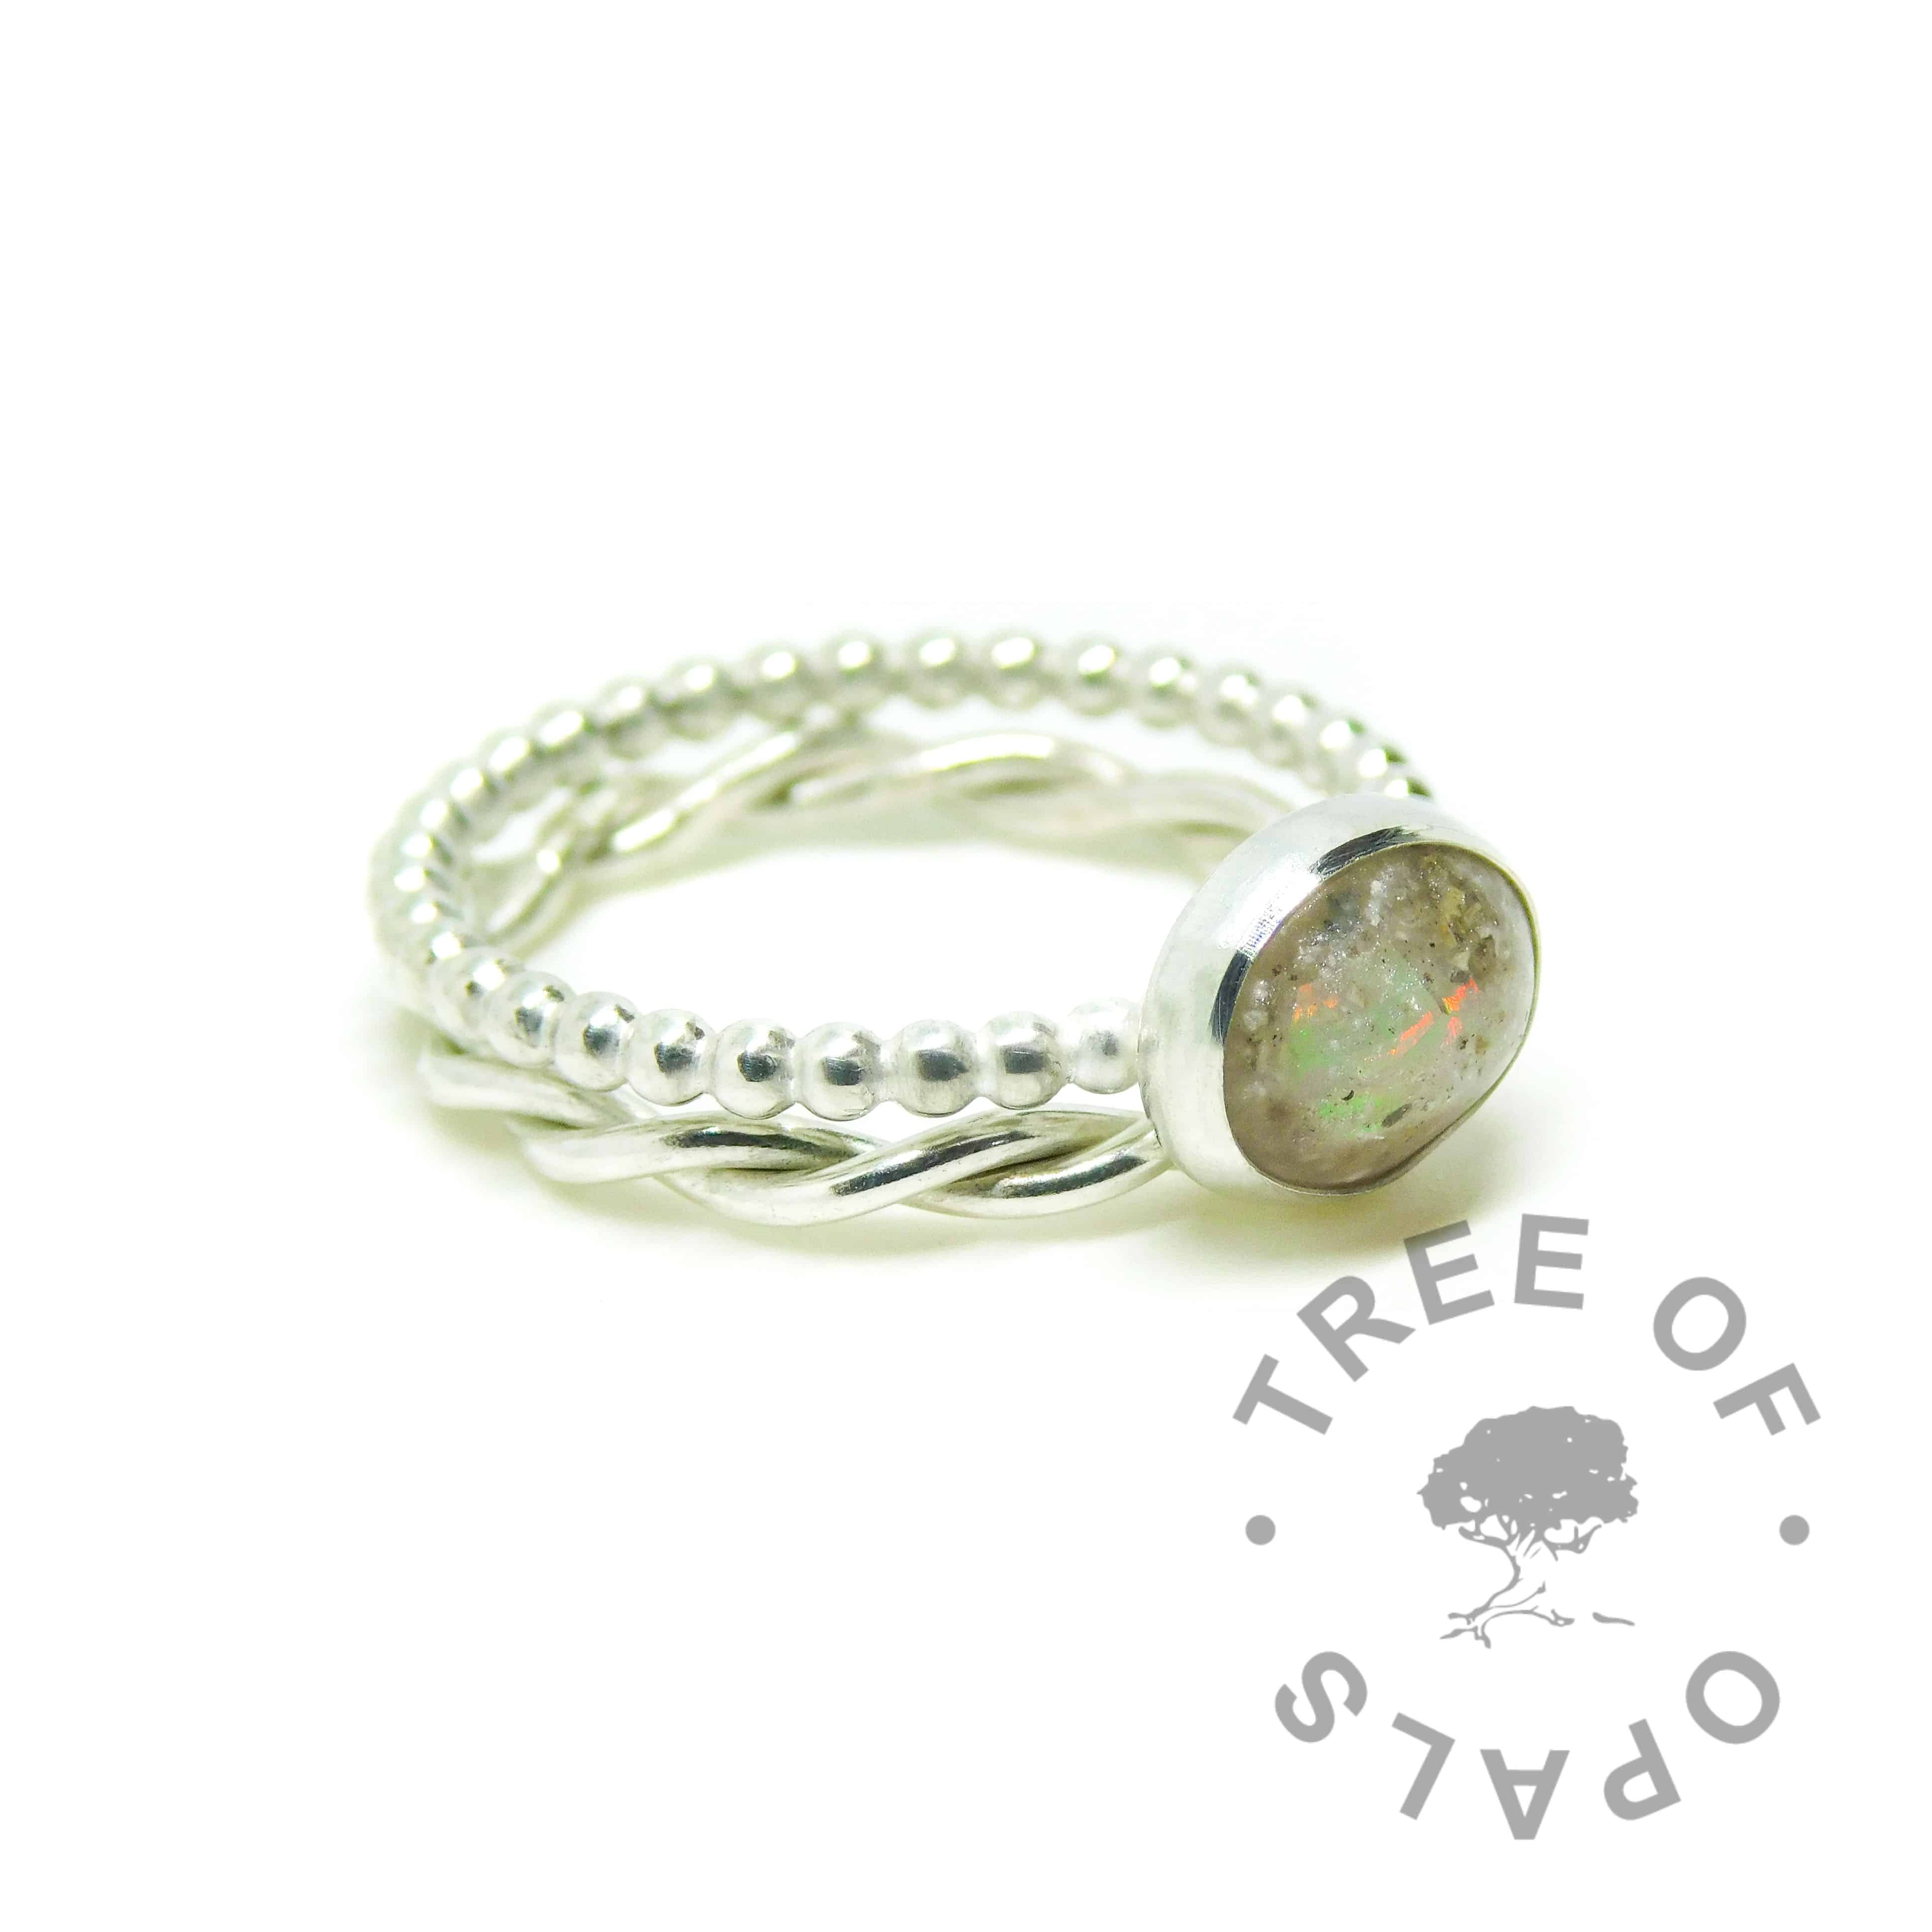 Classic clear resin umbilical cord ring (mockup) with October birthstone opal slices on a bubble wire band. Solid 935 aregentium silver handmade ring. Cremains ring. 10x8mm bezel cup rubbed over the cabochon for security. Shown with a twisted band stacking ring